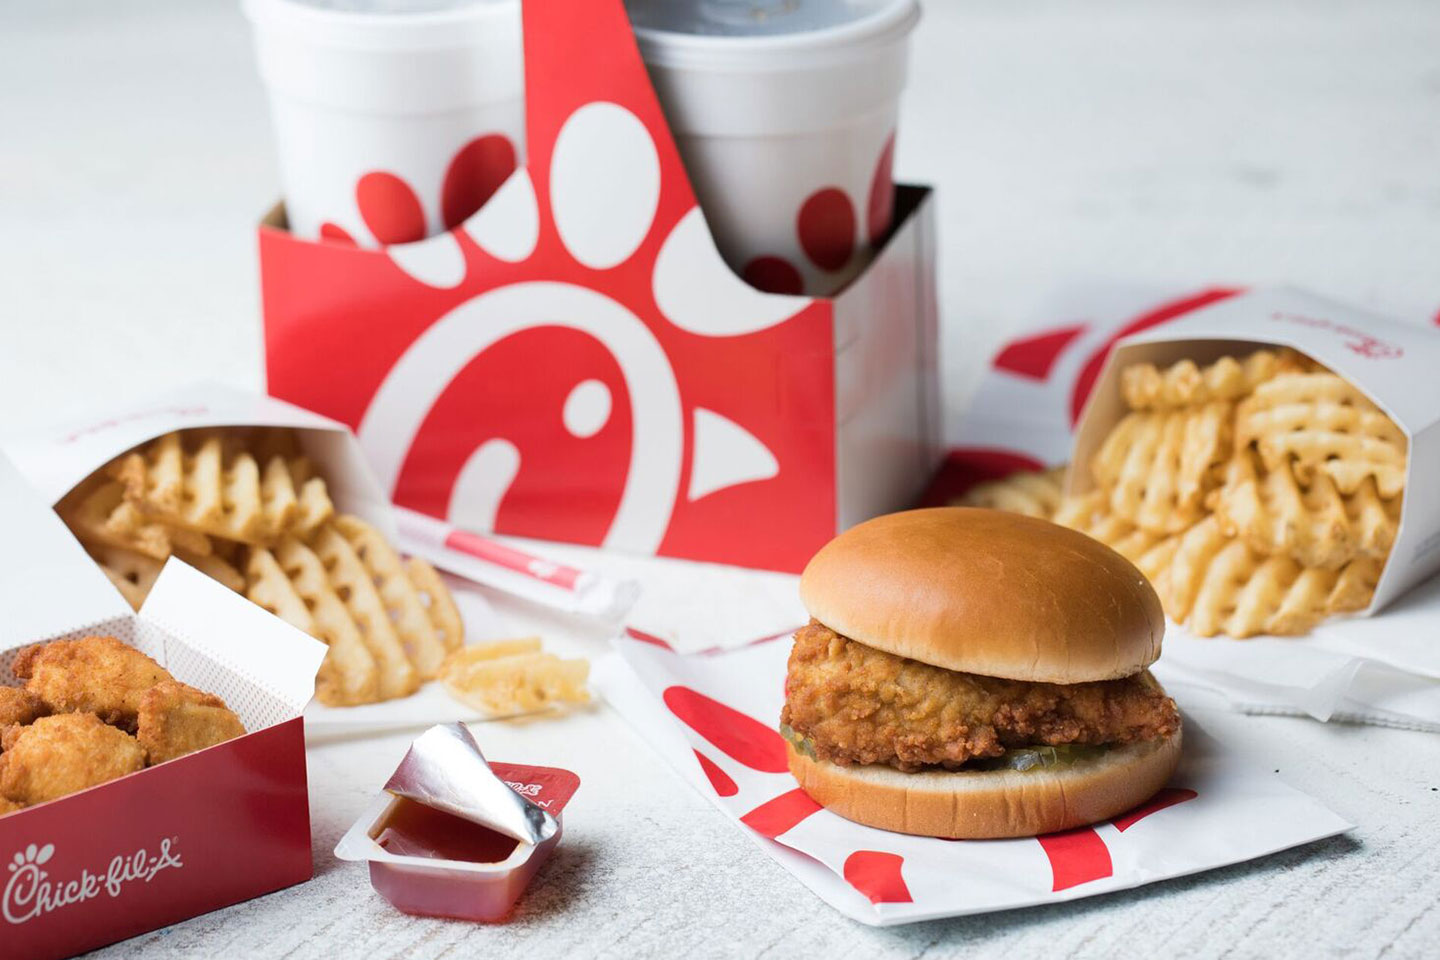 The Chick Fil A Stock Price and Net Worth: The Company and Its Value